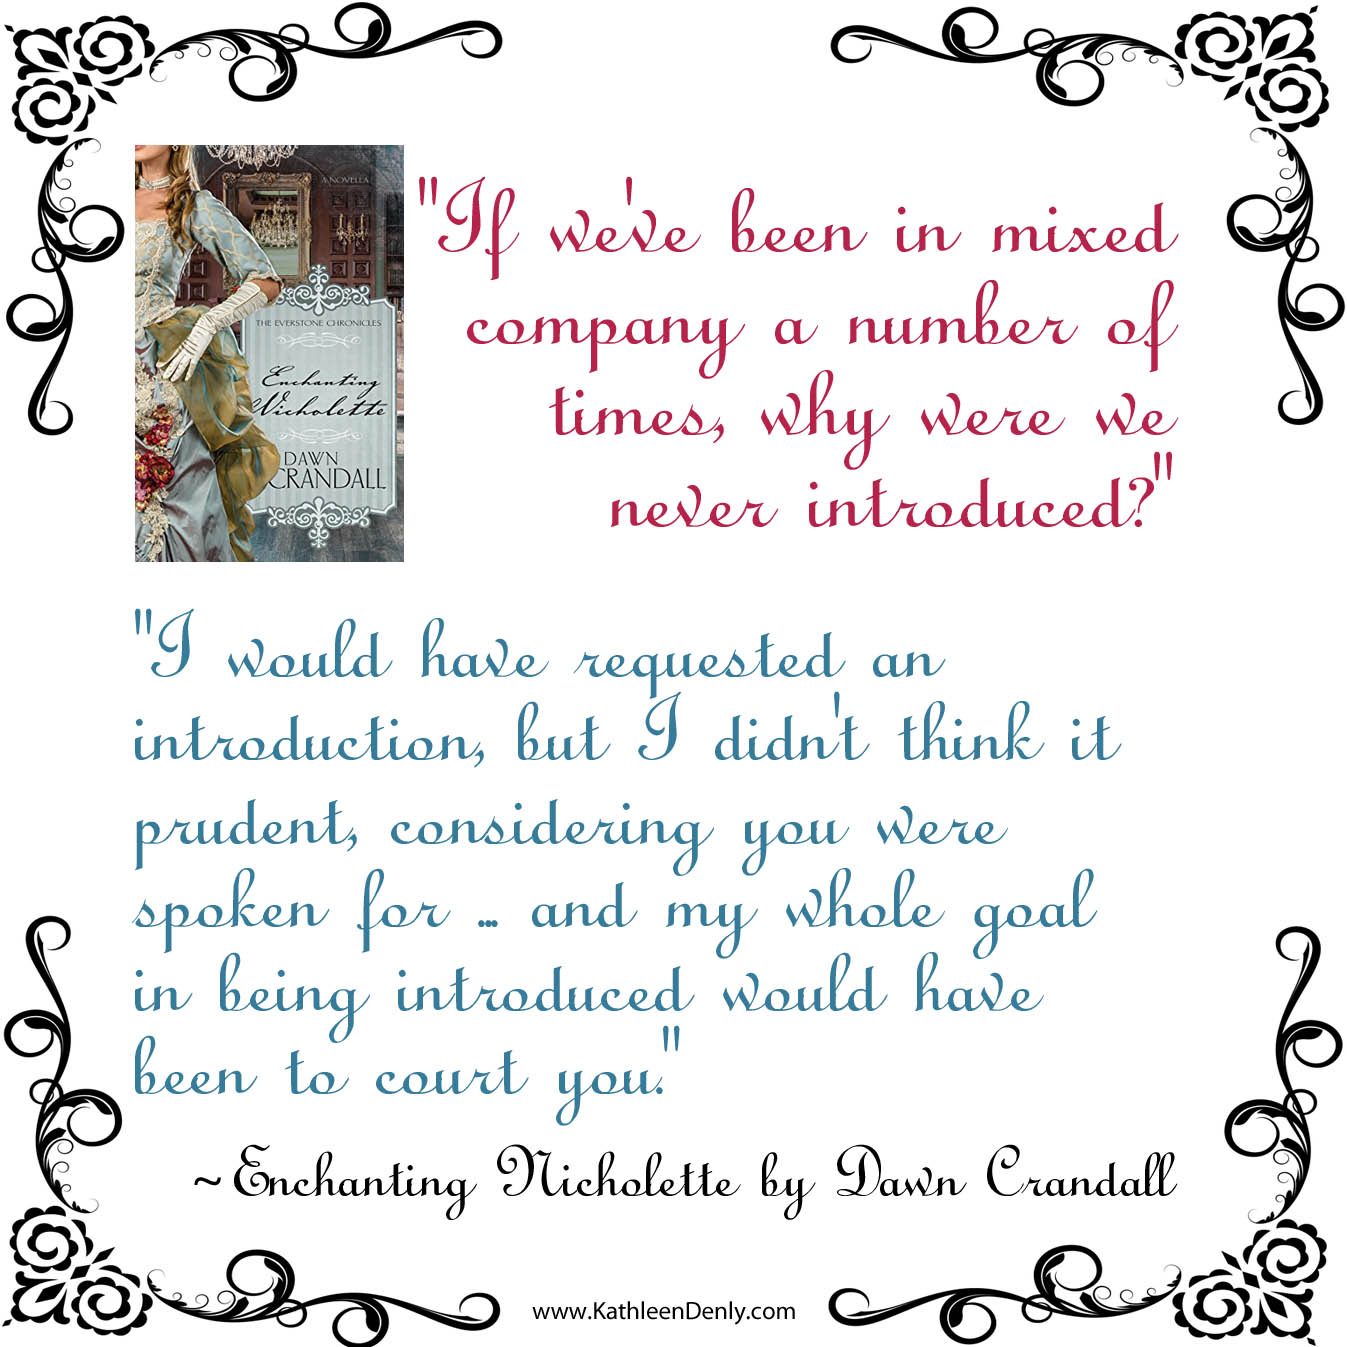 Book Quote Image - Enchanting Nicholette - Goal to Court You